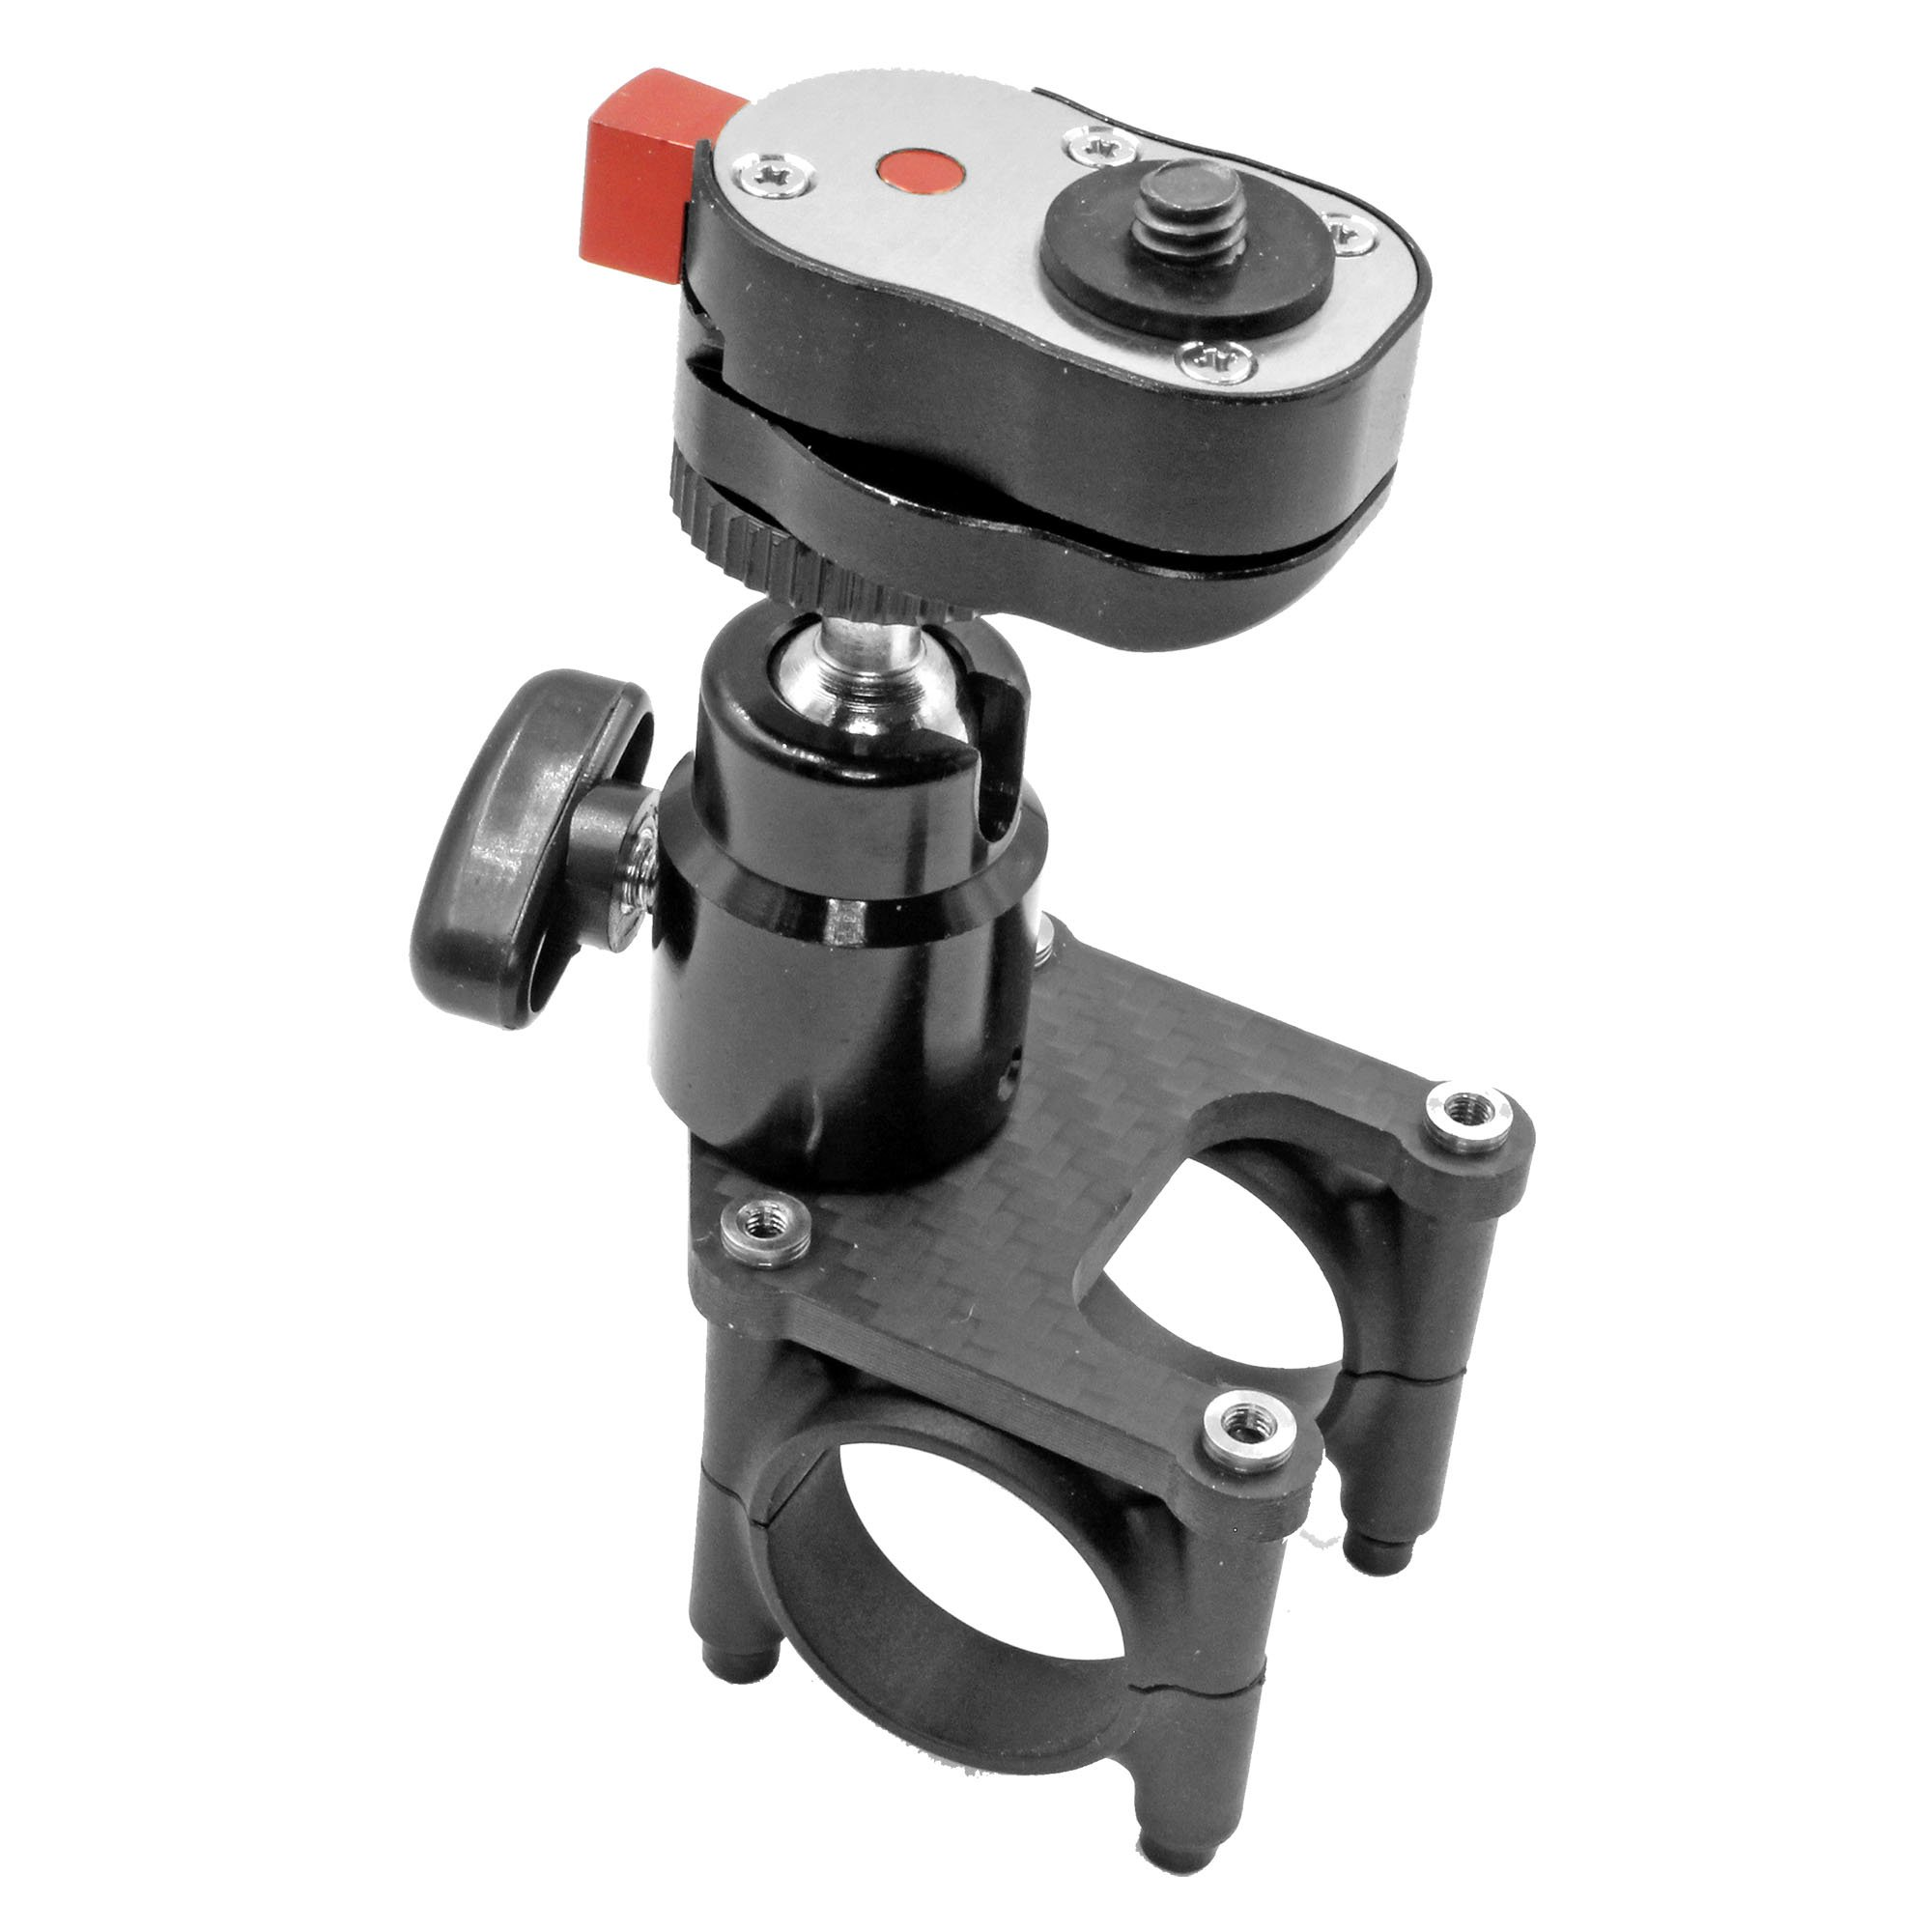 GyroVu Monitor Mount with Quick Release Plate for DJI Ronin-M / Freefly MoVI